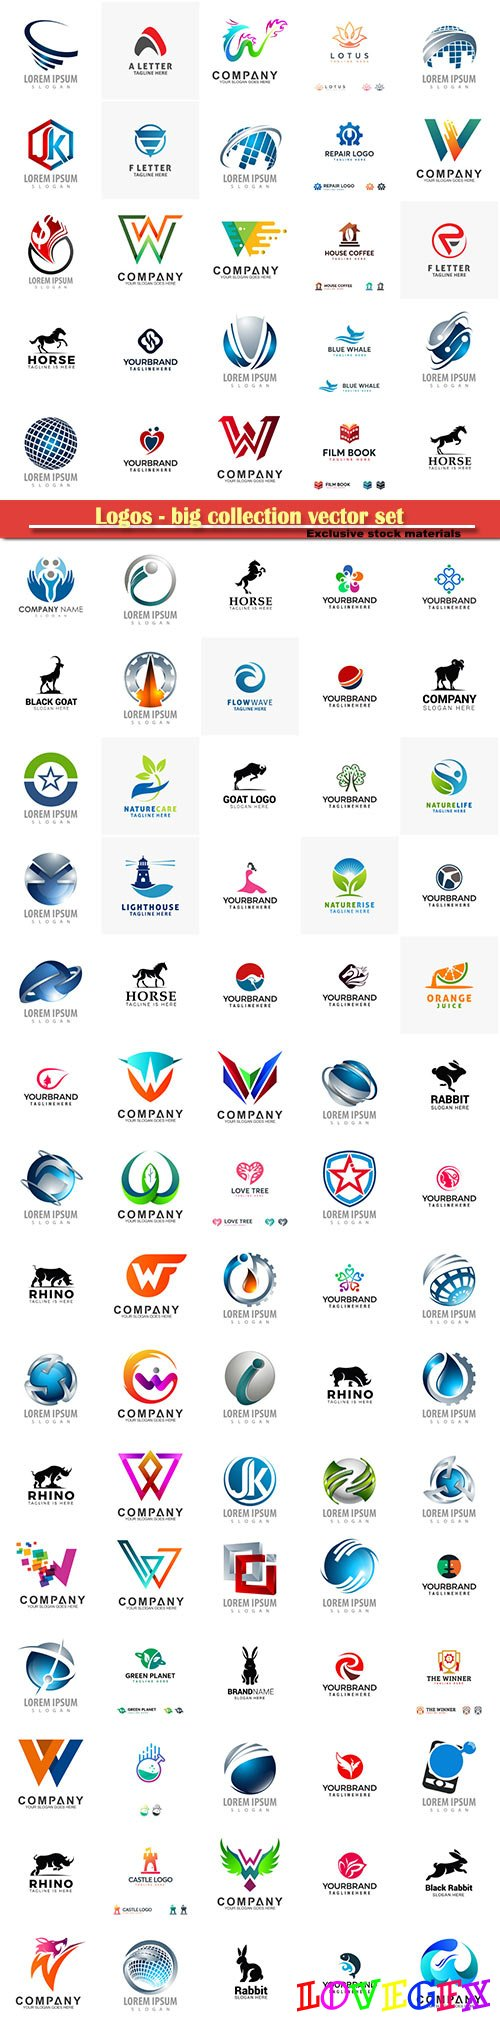 Logos - big collection vector set # 4